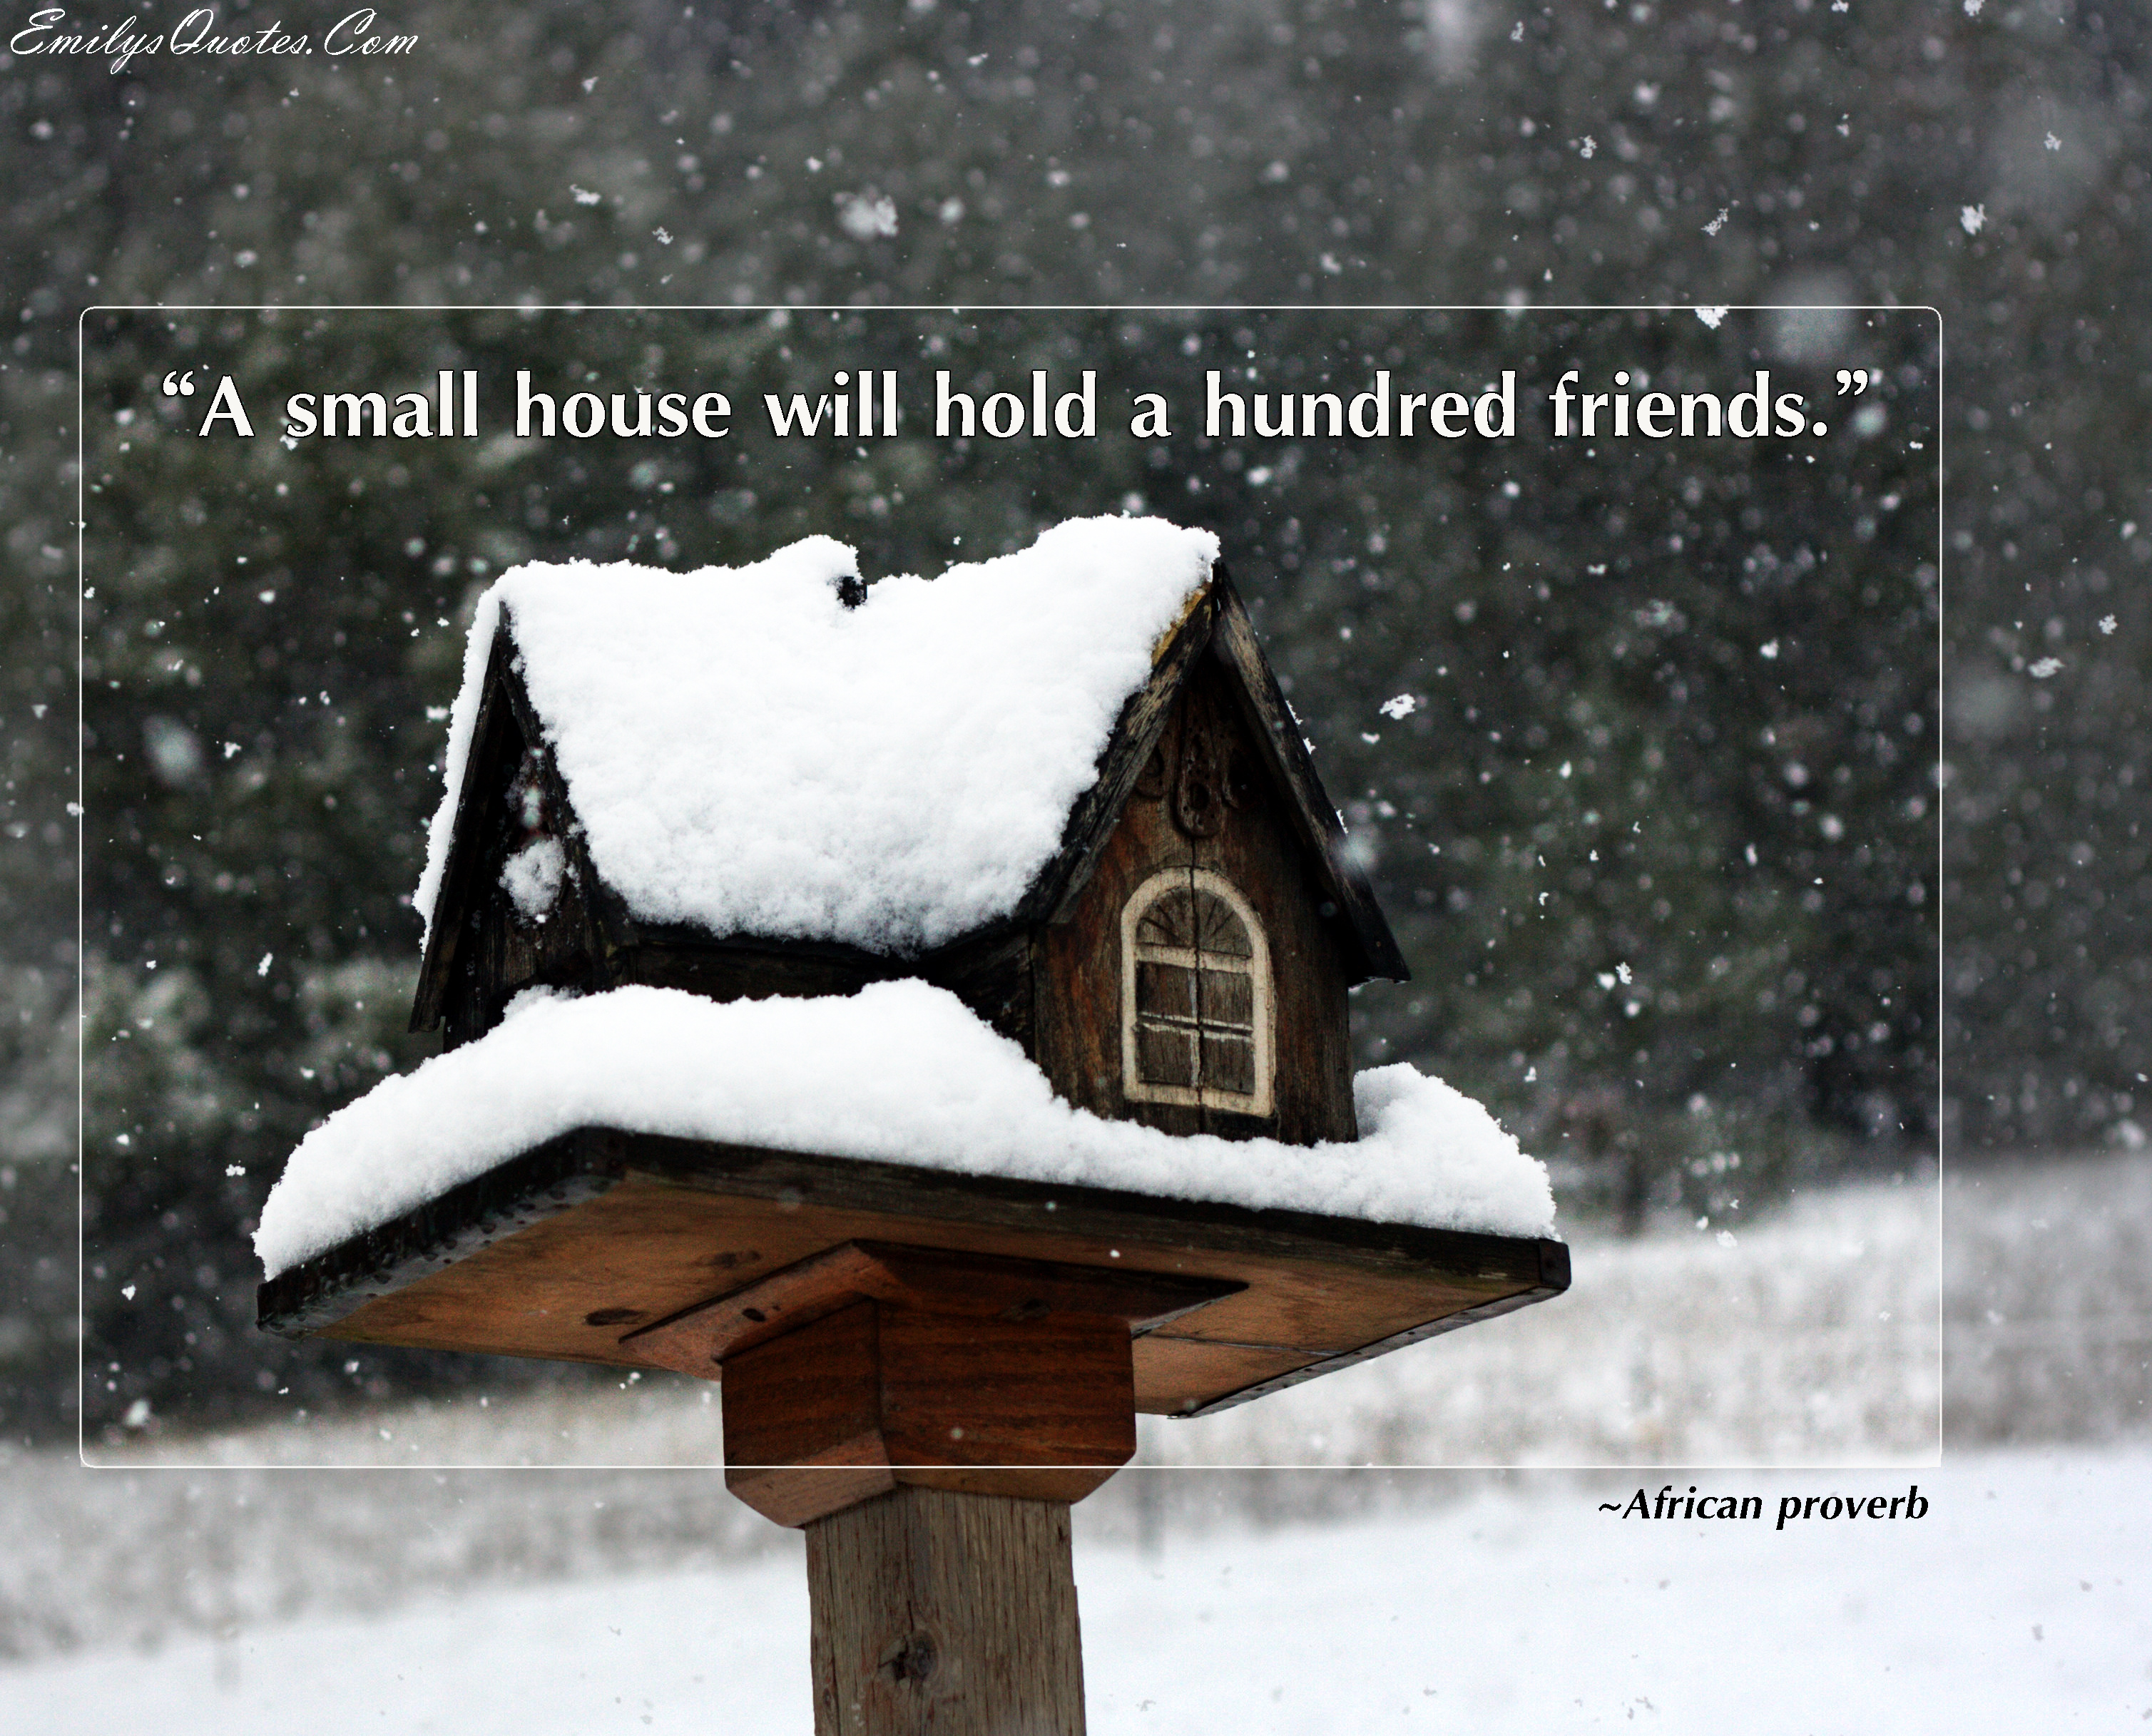 EmilysQuotes.Com - friendship, positive, small house, African proverb